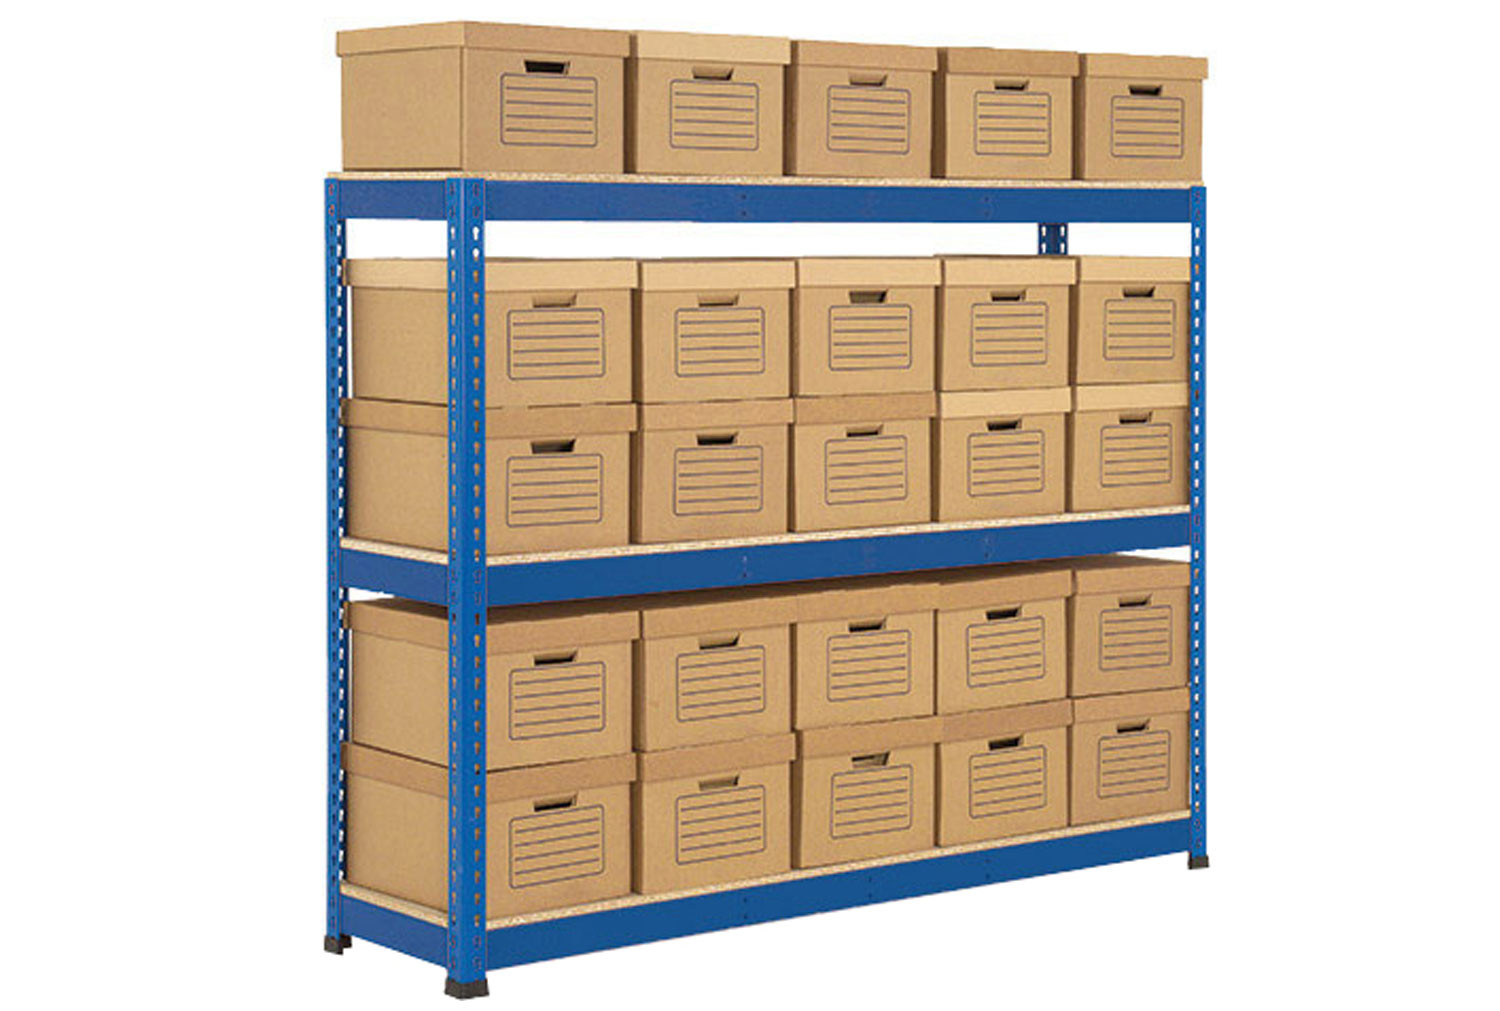 Rapid 1 single sided archive storage unit with 25 boxes